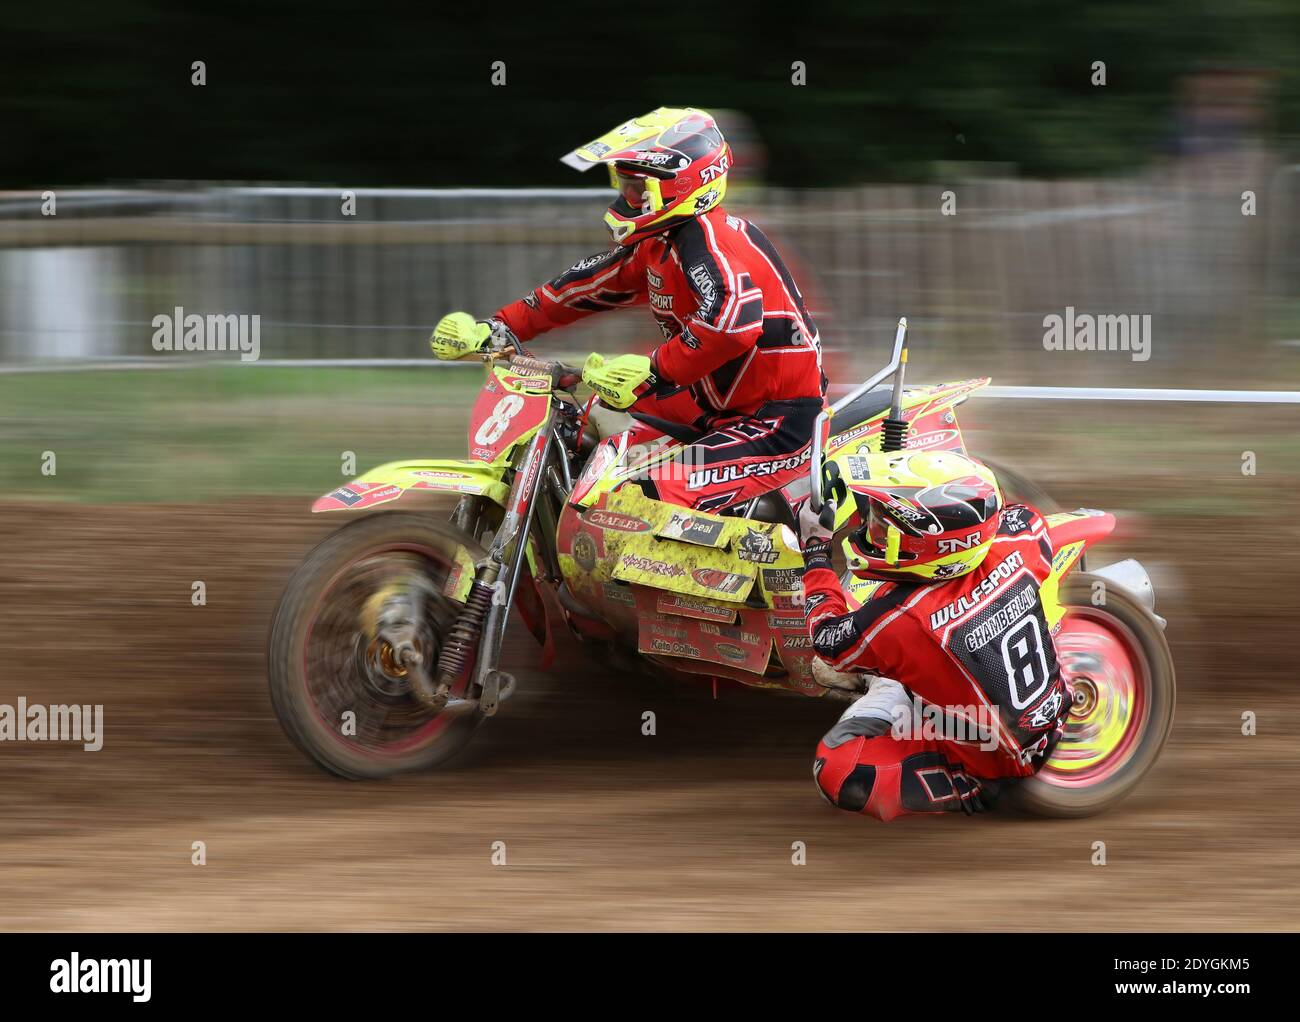 Sidecar Motocross Racing High Resolution Stock Photography And Images Alamy